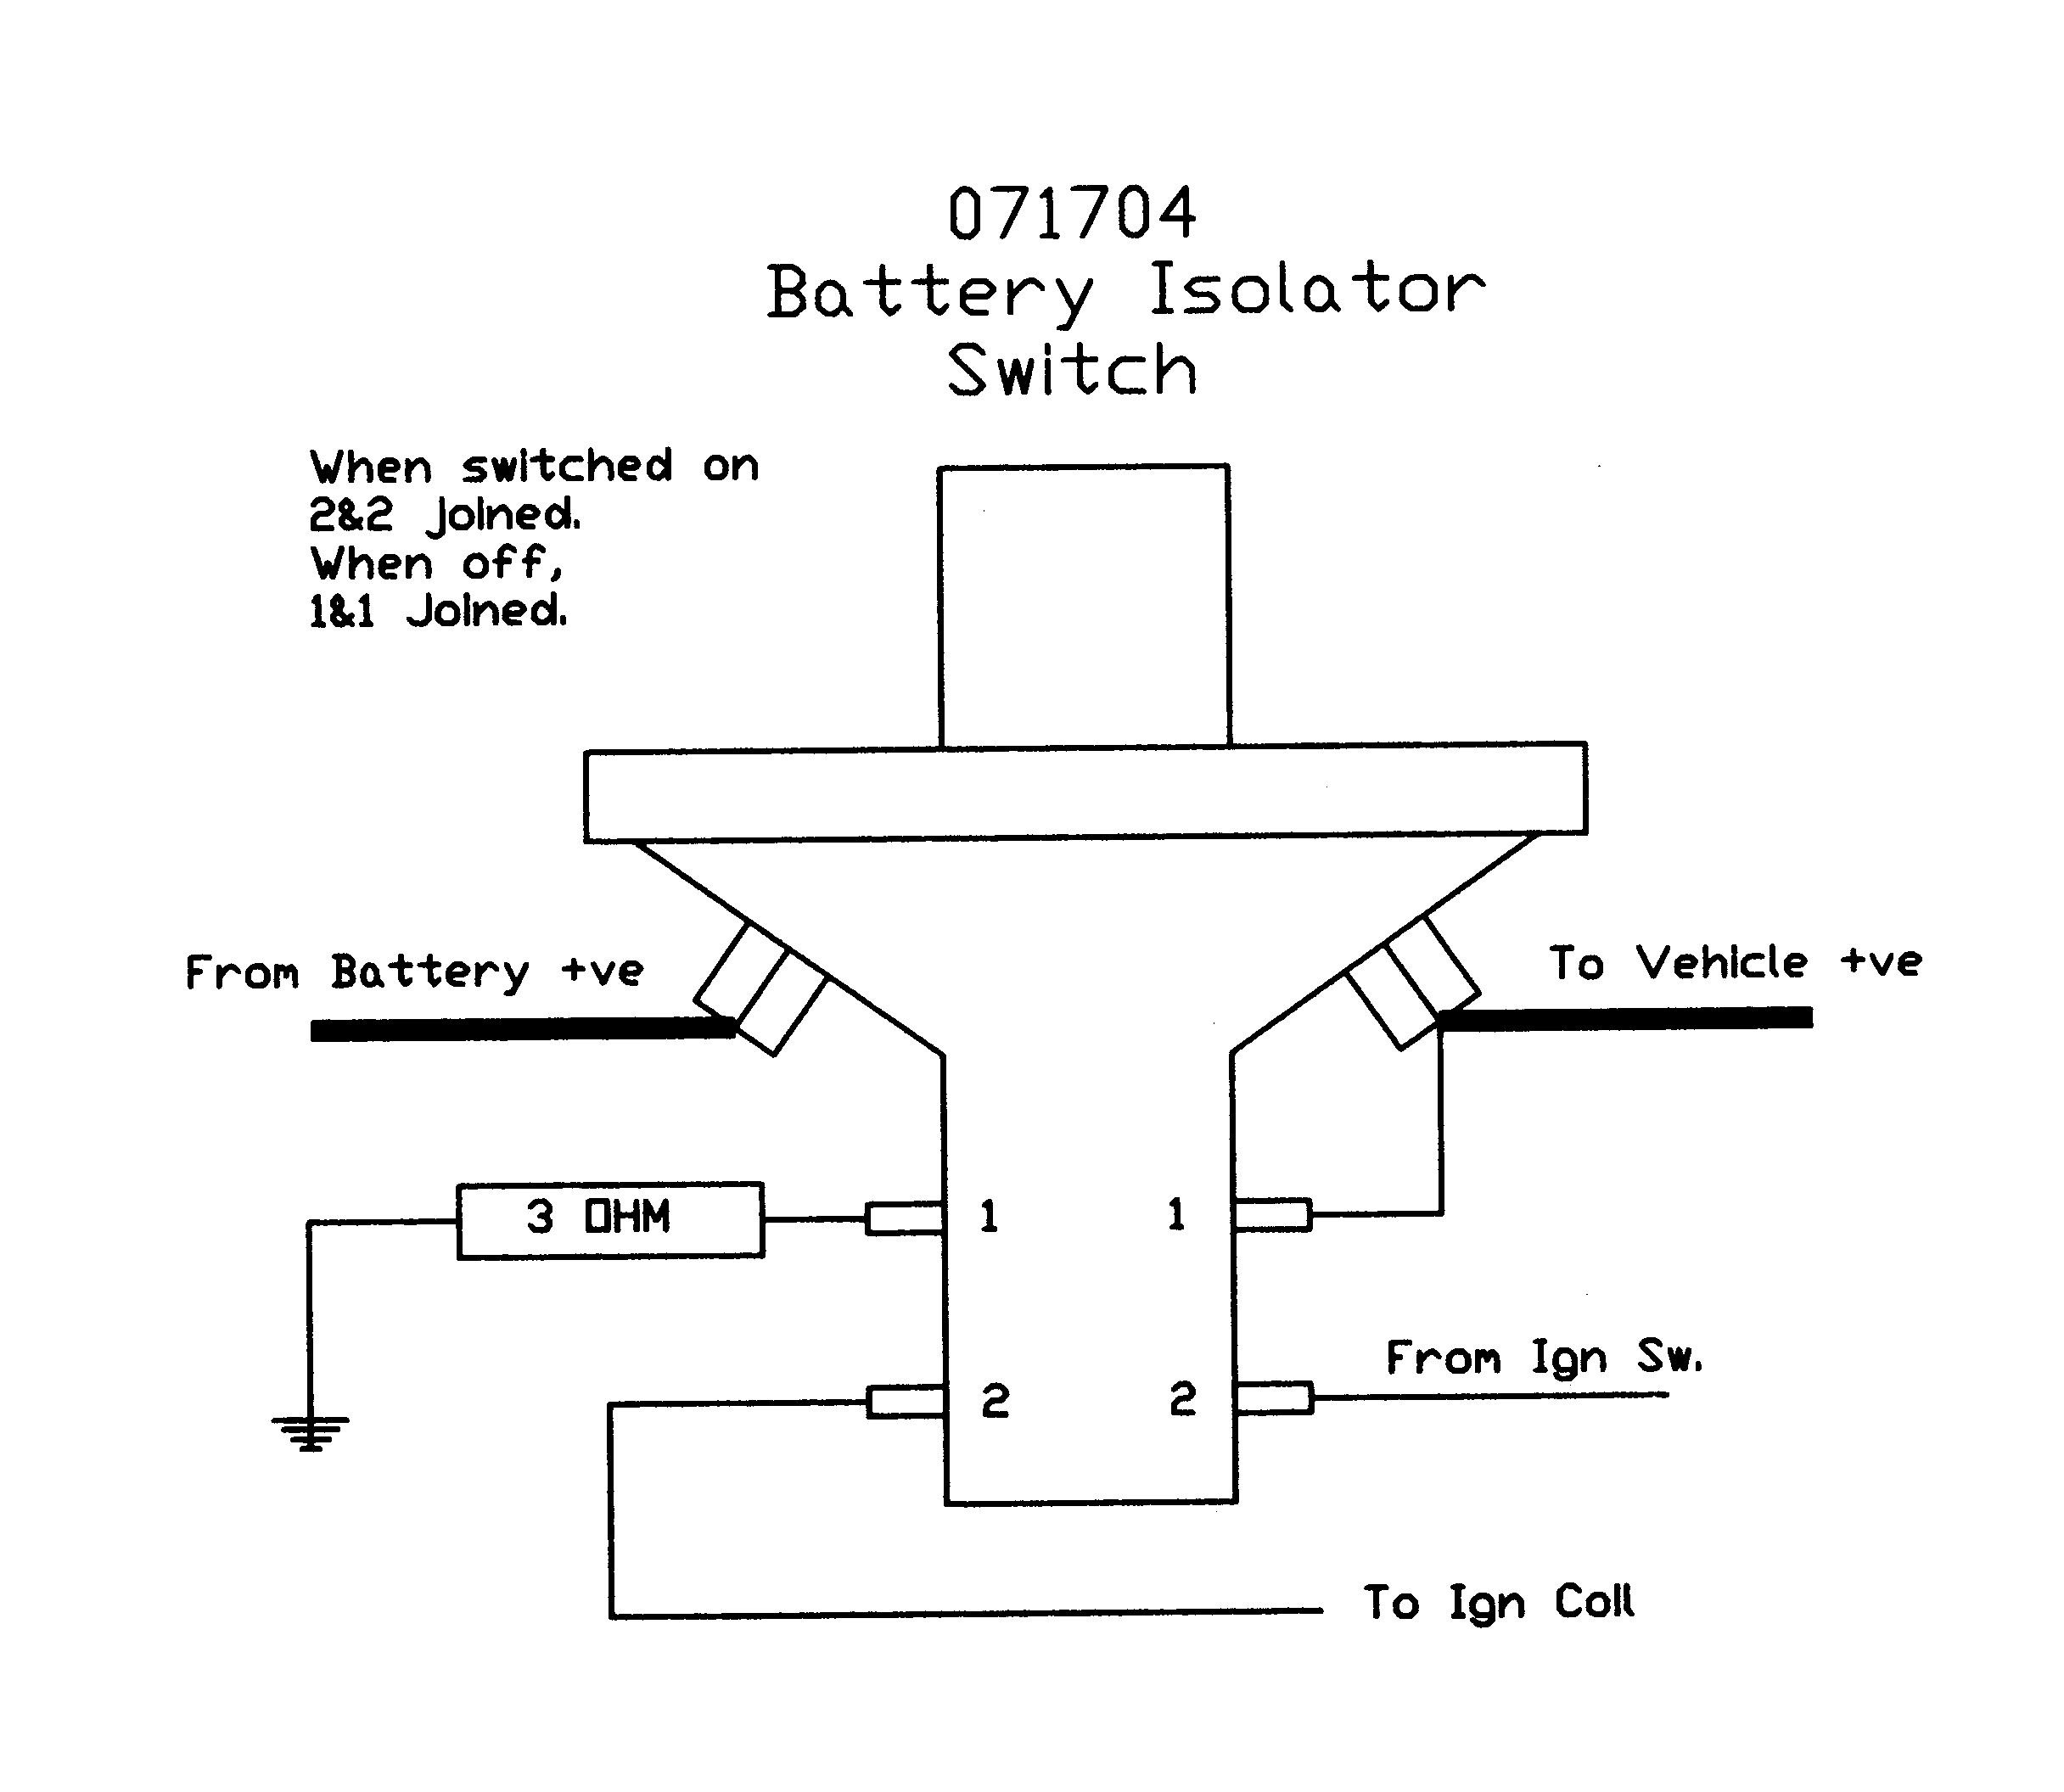 071704_wiring_diagram_1 battery isolator switch removable key, splash proof cover battery isolator wiring diagram at fashall.co